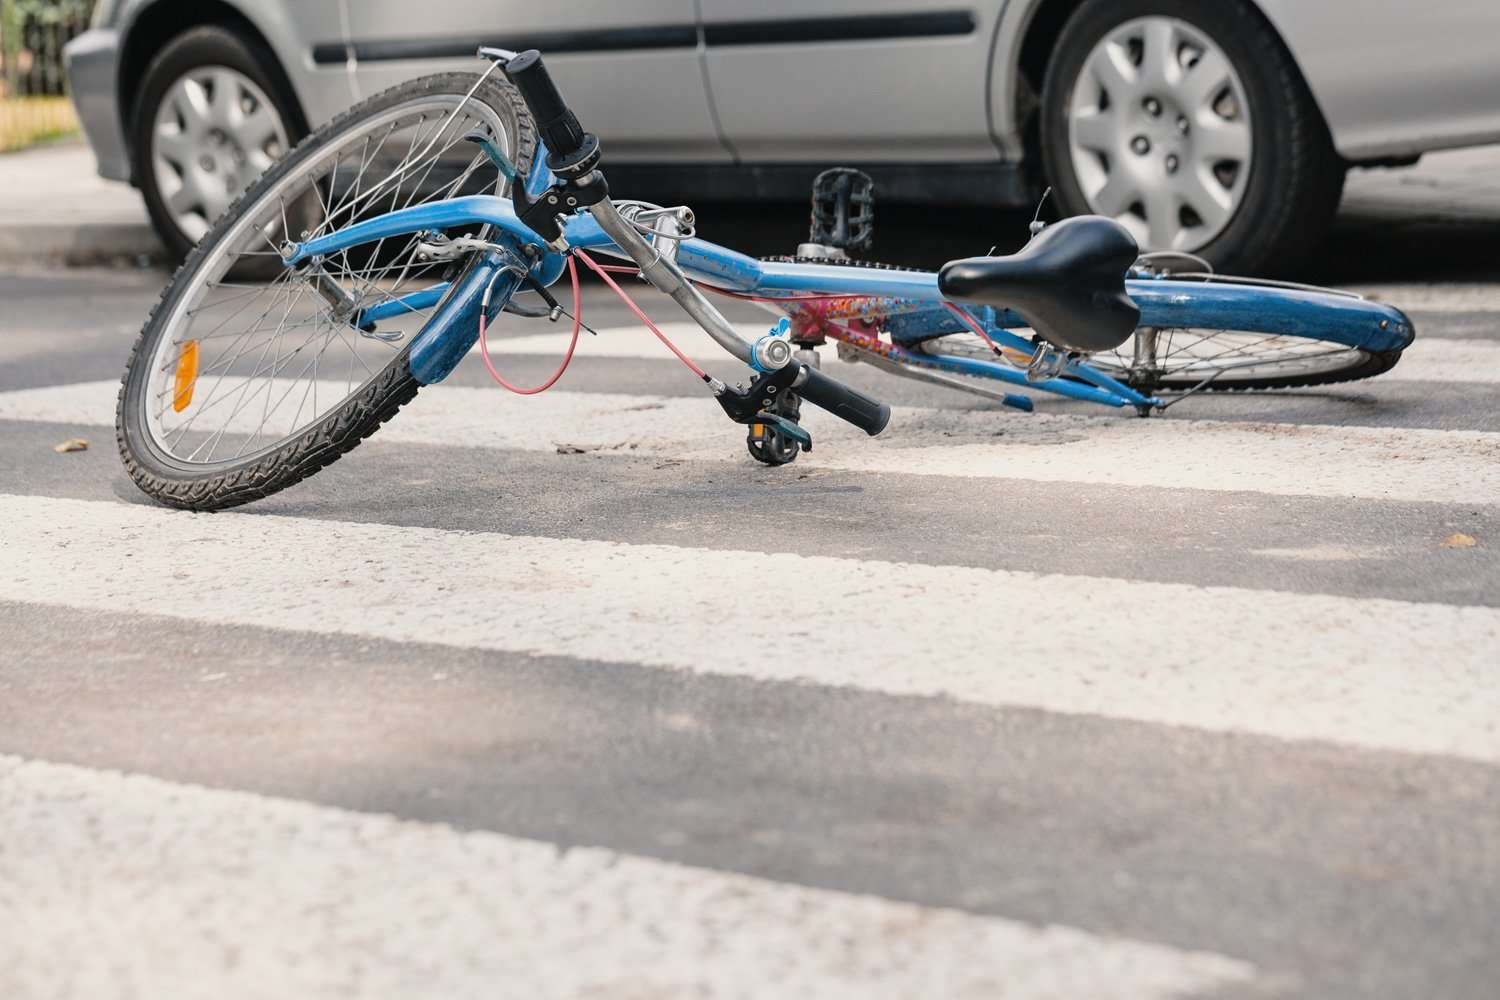 Bicycle laying on the road hit by a car